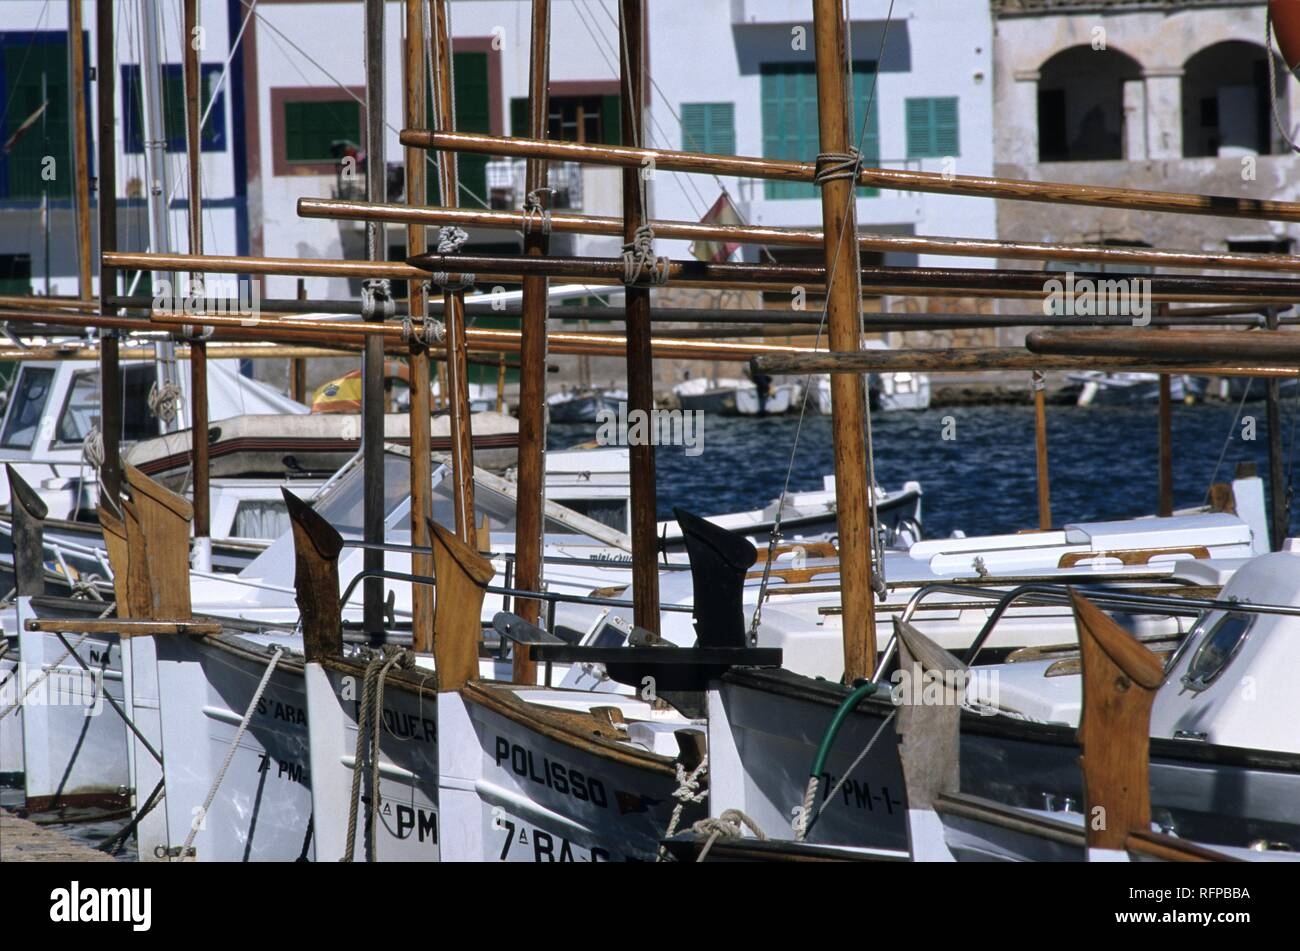 ESP, Spain, Balearic Islands, Mallorca: Portocolom. Stock Photo